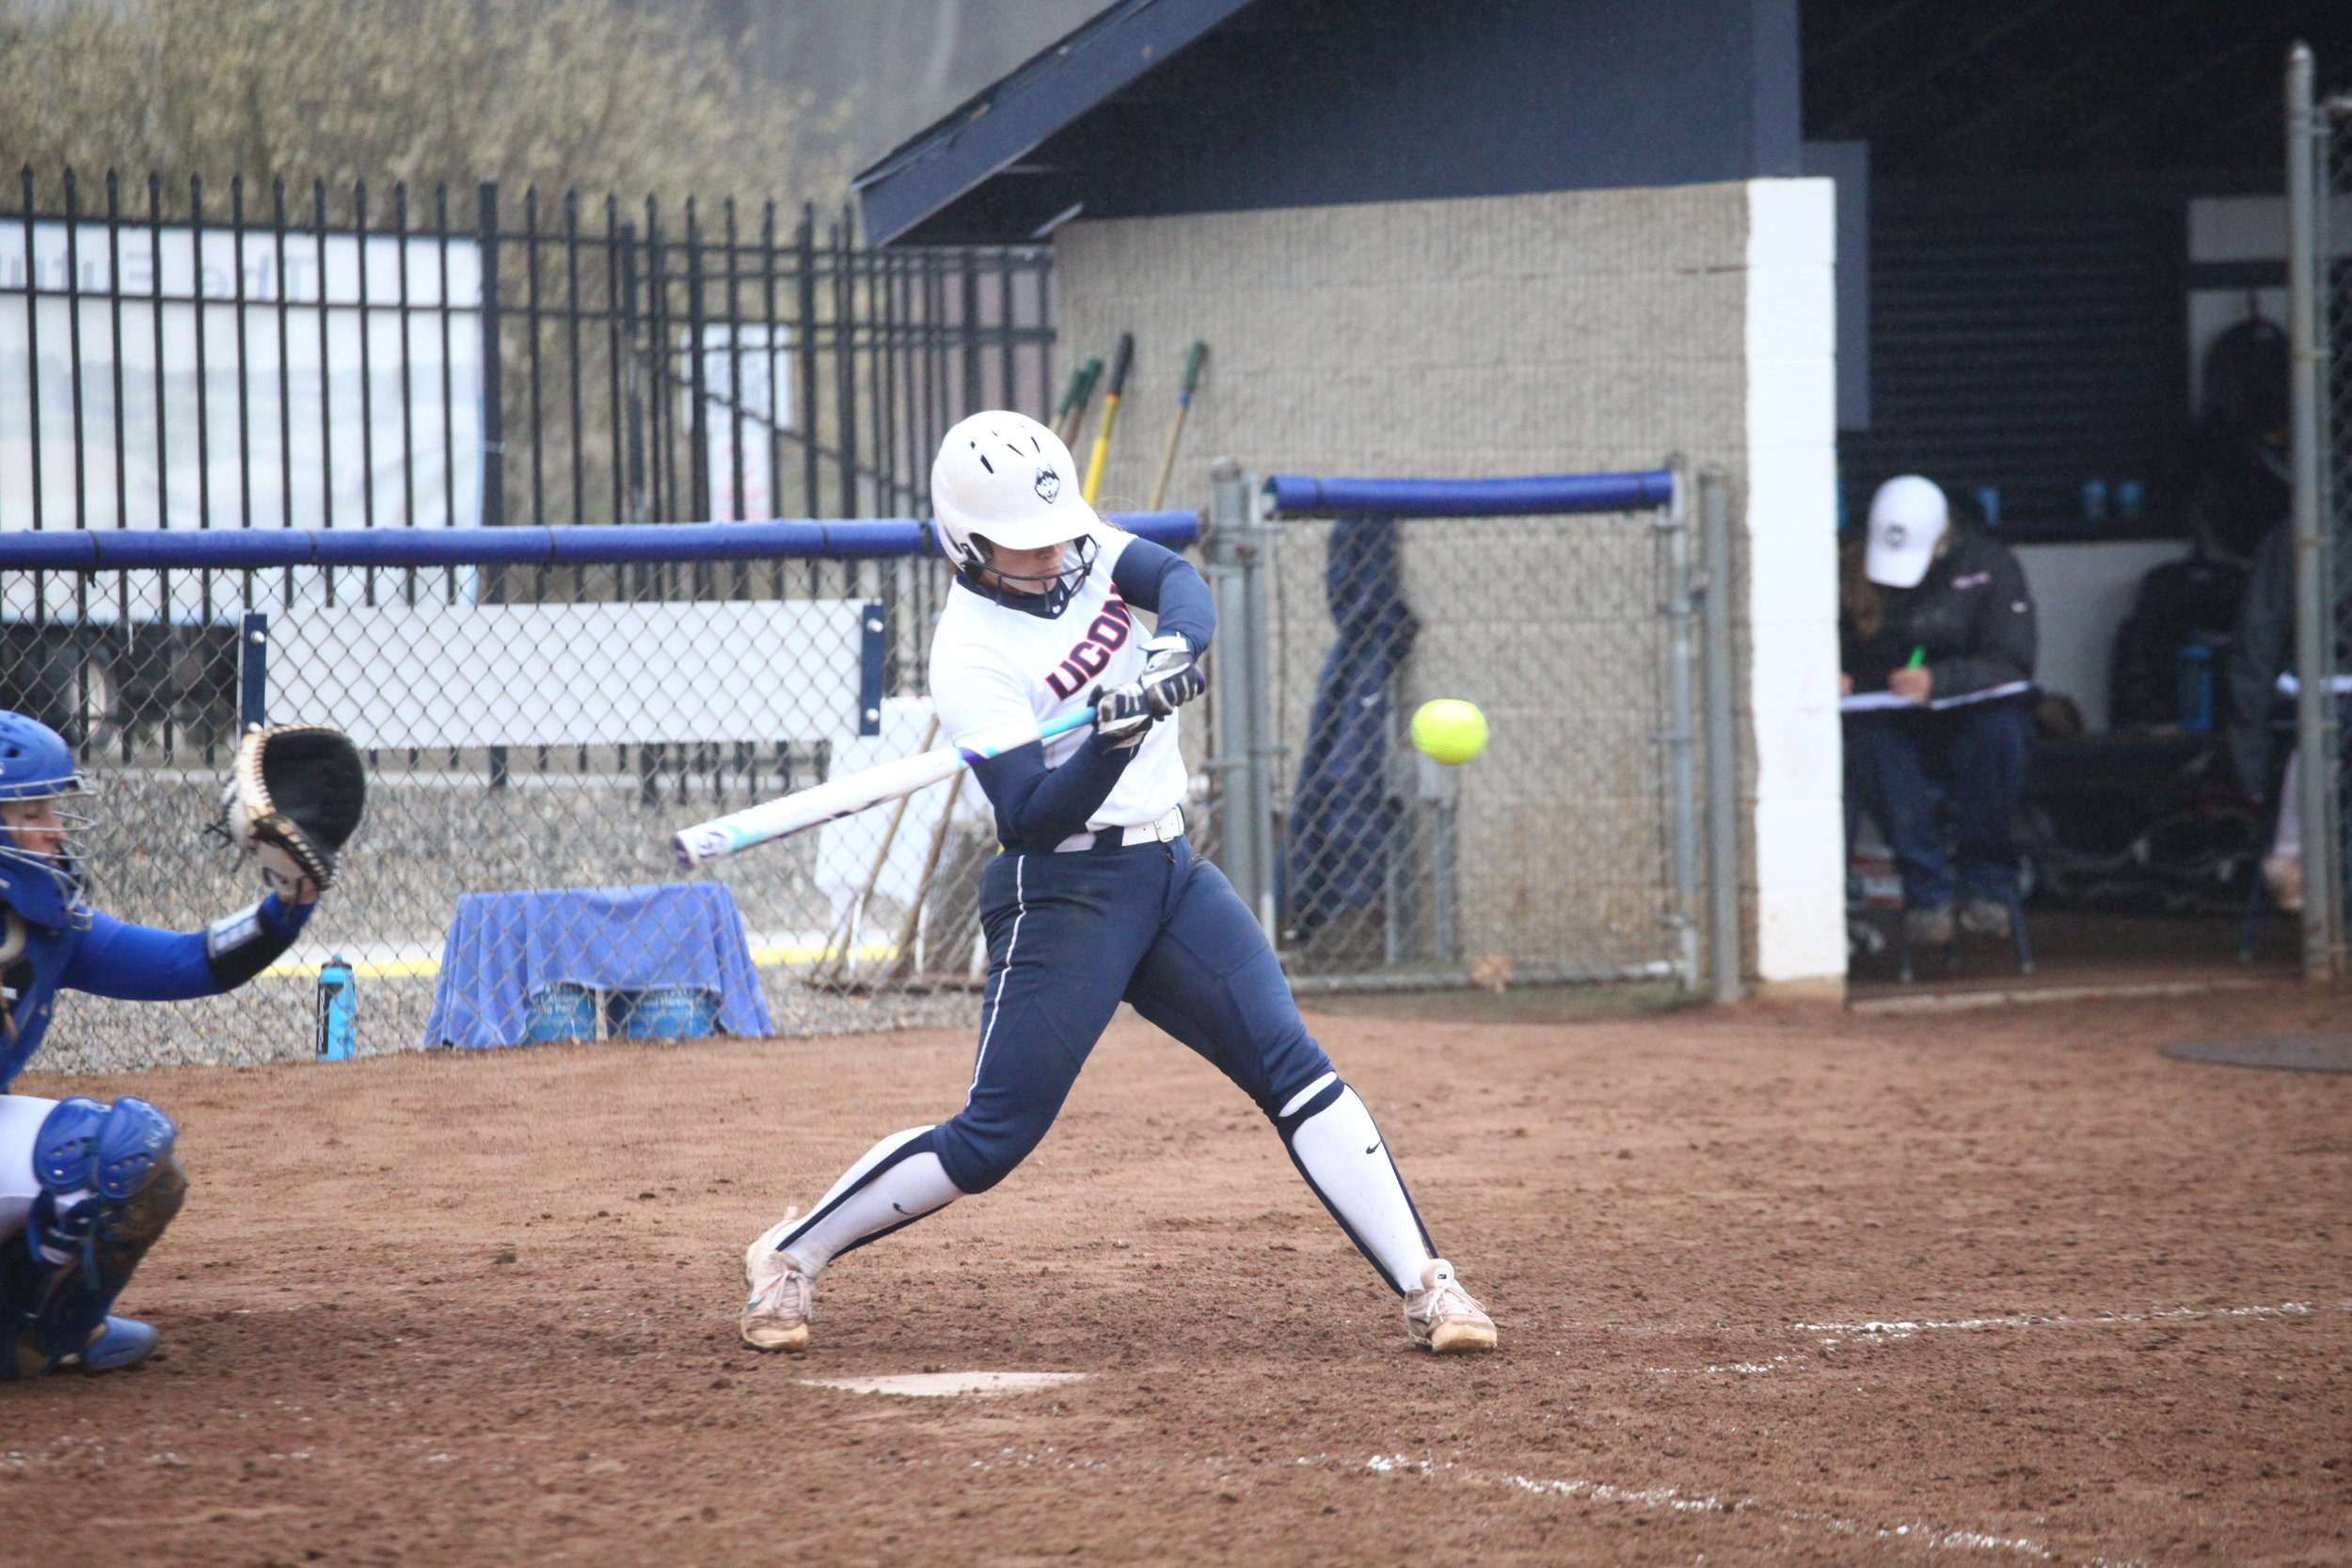 The Huskies took on Tulsa Friday afternoon, April 21, 2017, under some light rain at Burrill Family Field in Storrs, CT. The Huskies suffered a defeat with Tulsa winning 3-1. (Tyler Benton/The Daily Campus)